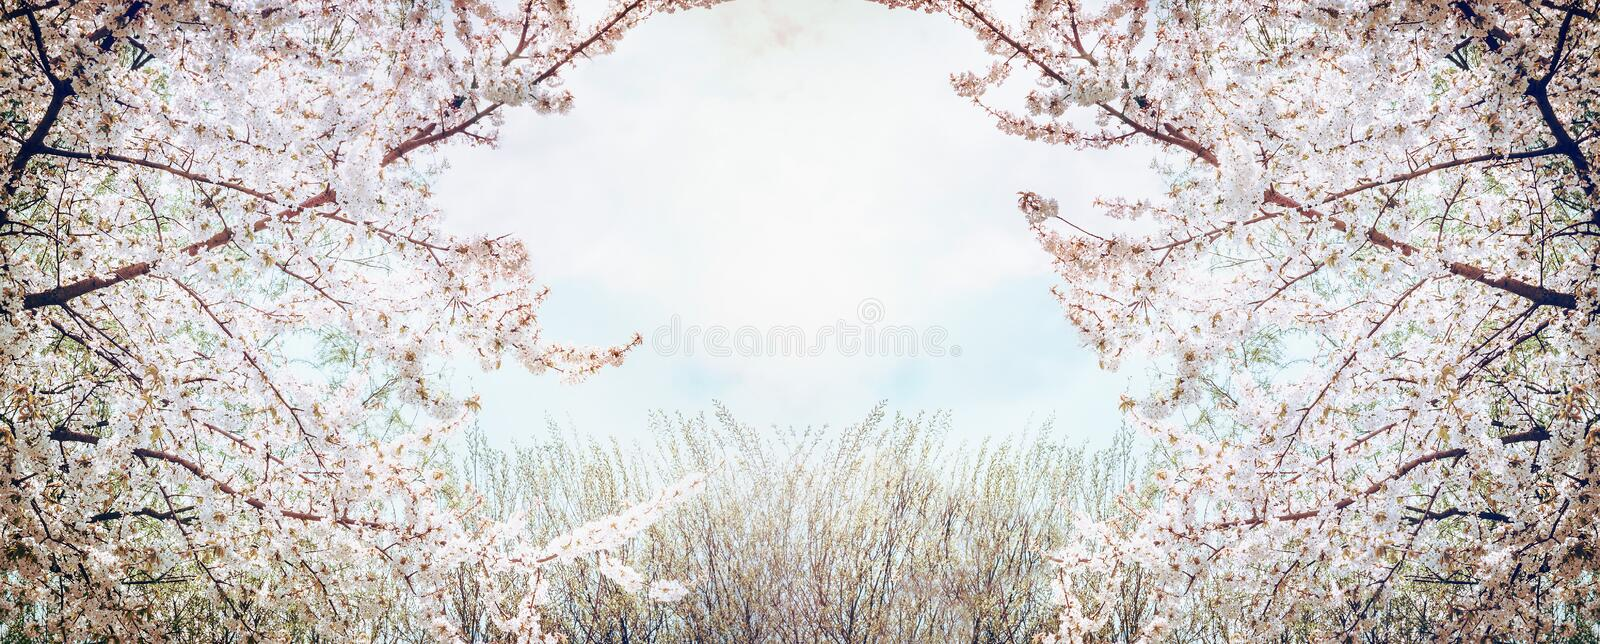 Blooming fruit trees over sky and spring nature background in garden or park royalty free stock photography